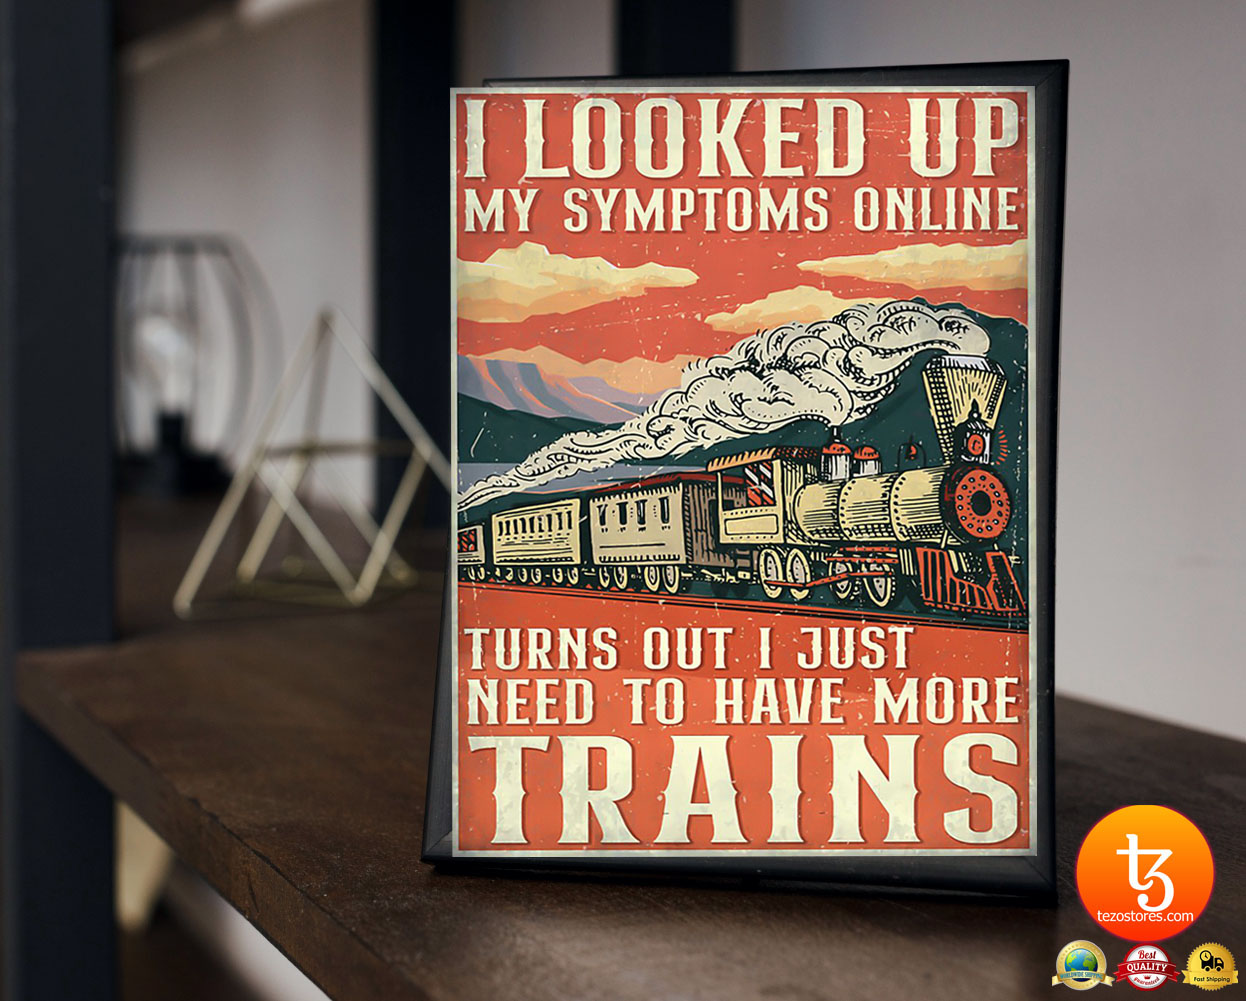 Model railroad looked up my symptoms online poster 2